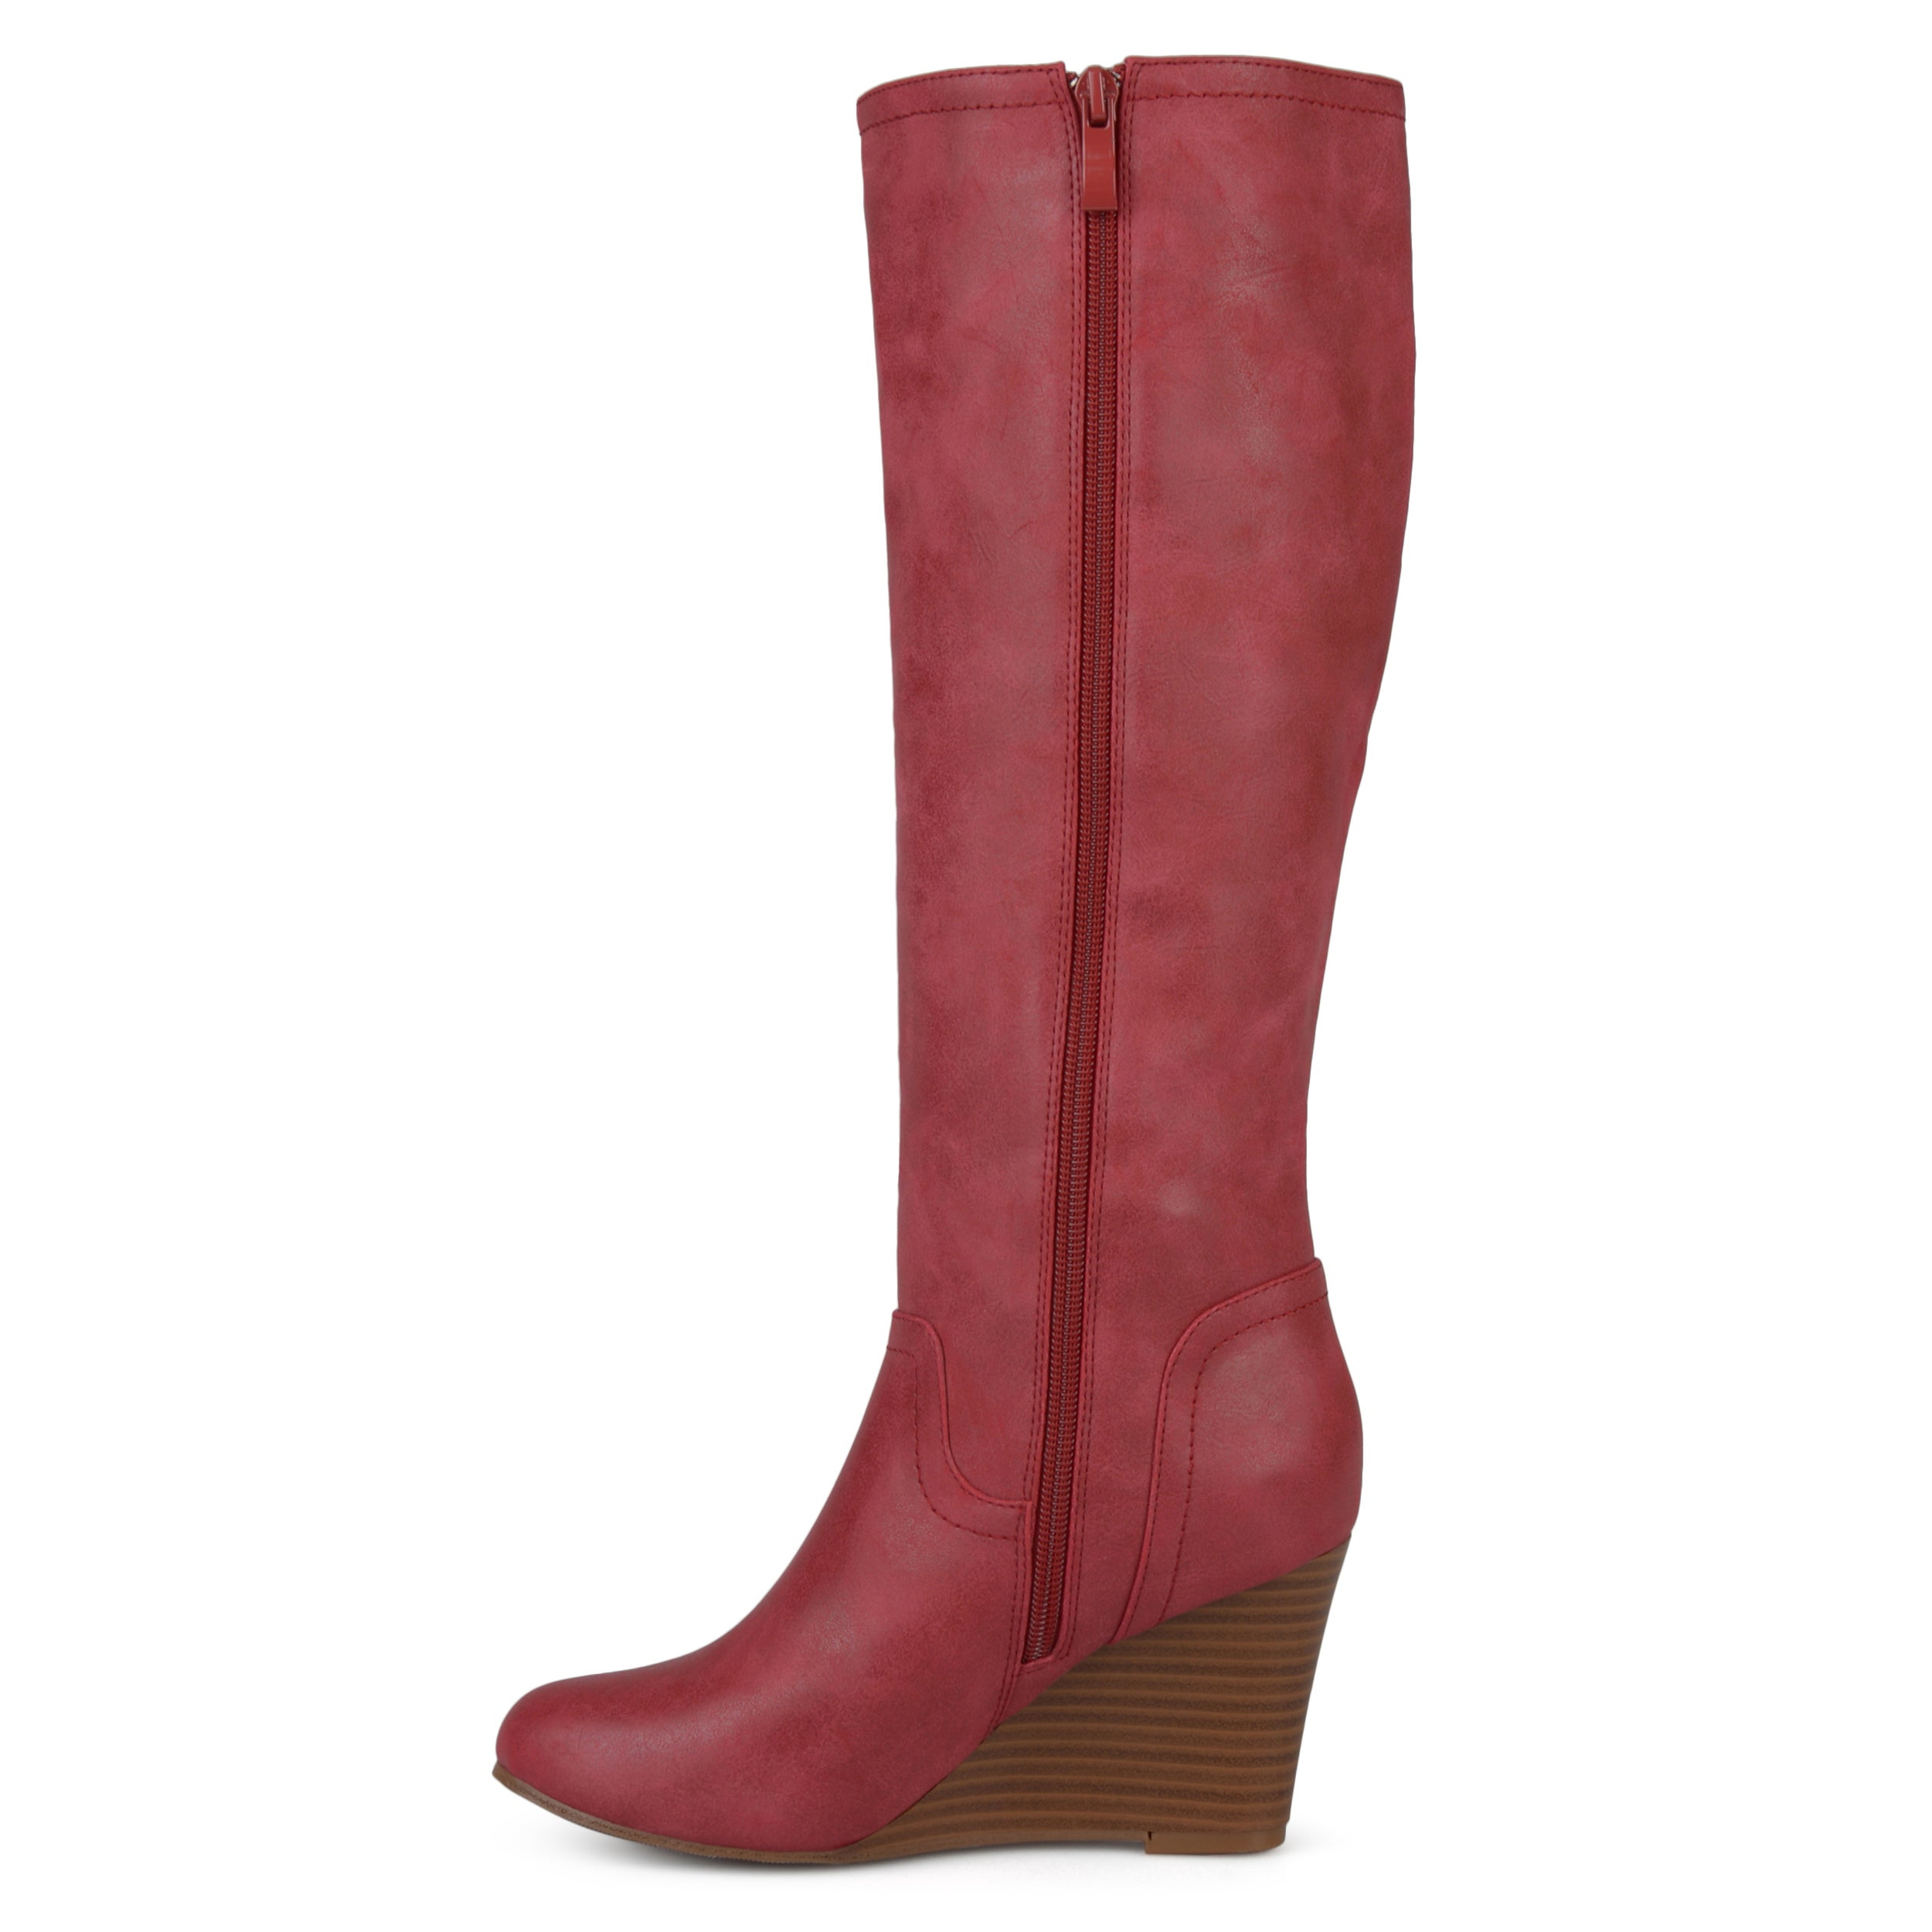 43ddb11355f Journee Collection Women s  Langly  Regular and Wide Calf Round Toe Mid-calf  Wedge Boots